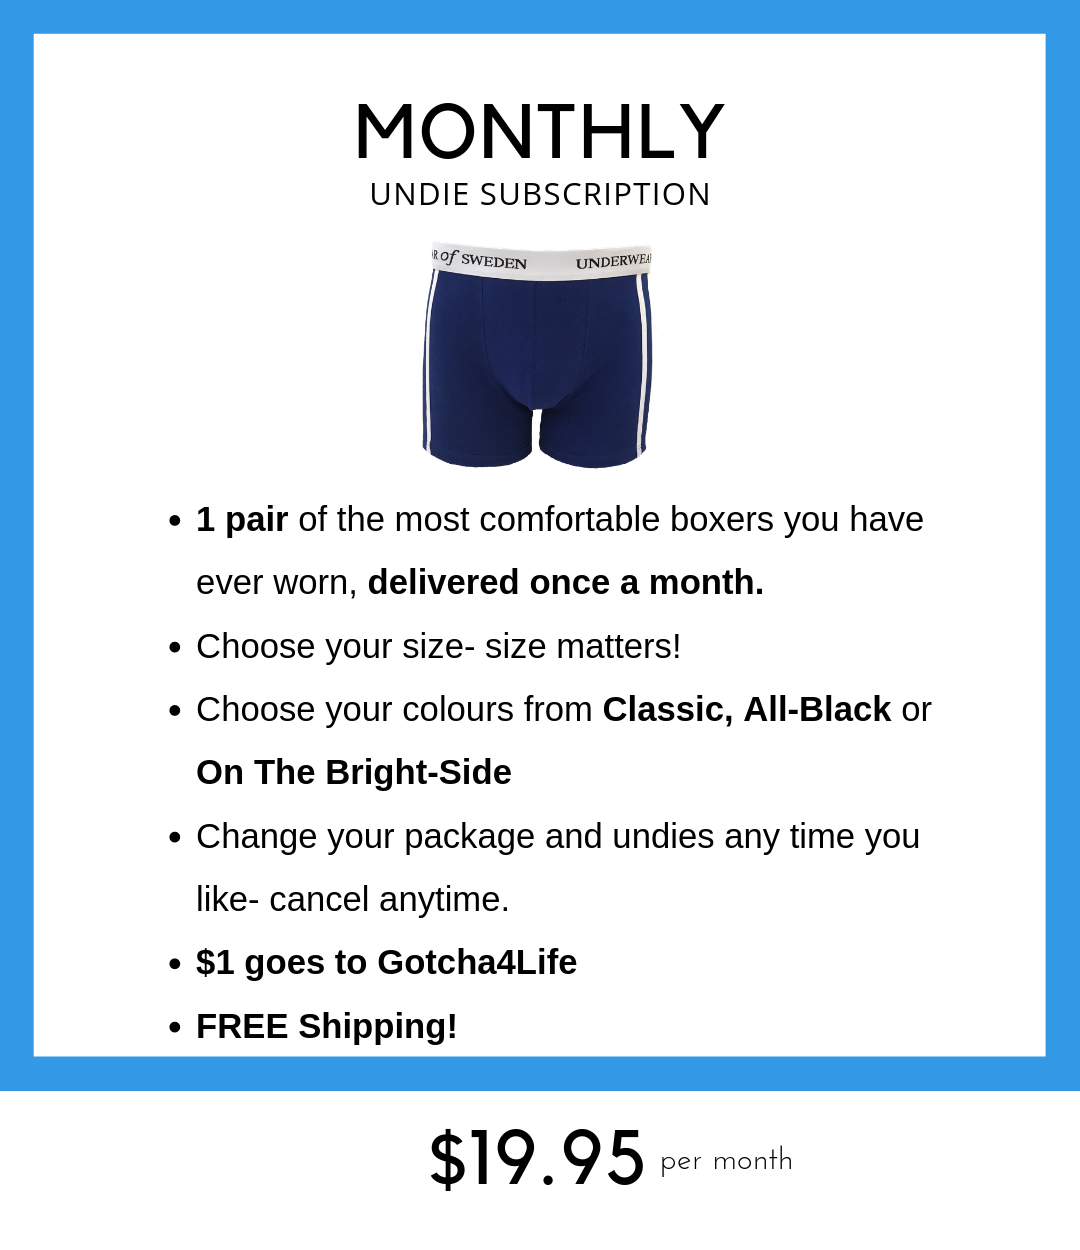 Monthly undie subscription